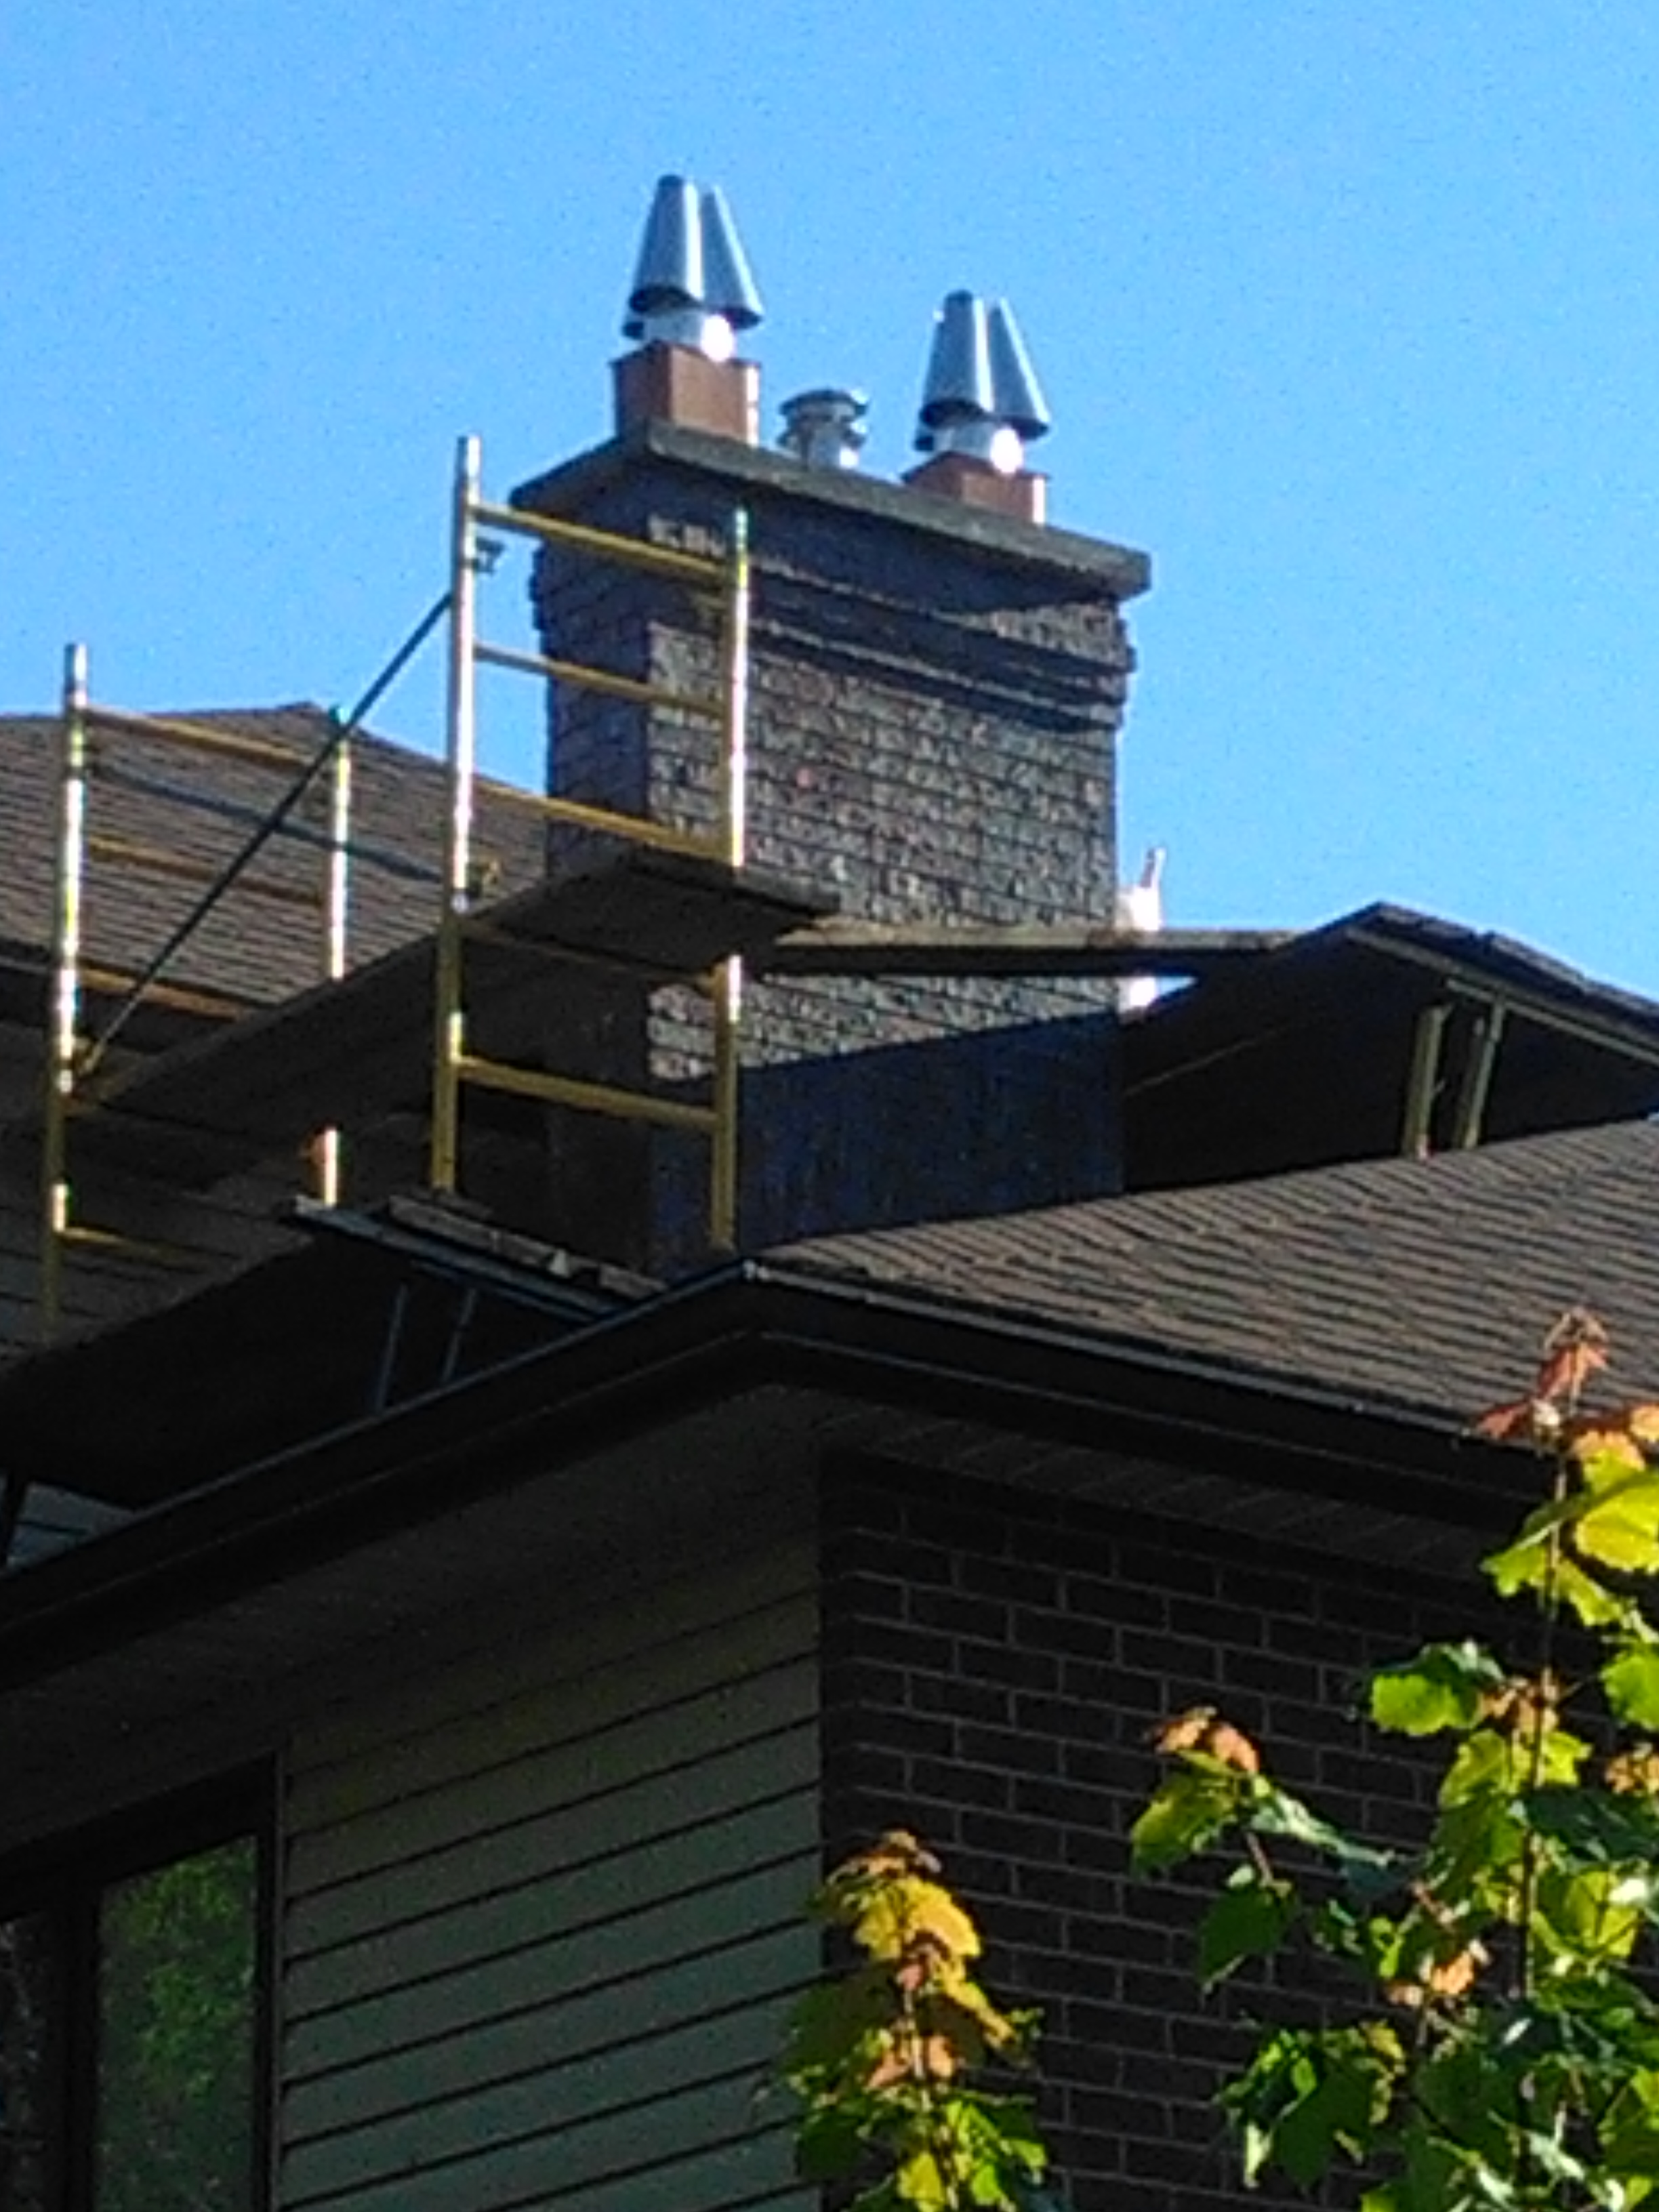 image of chimney repair-chimney repair services completed in Halifax-Dartmouth Regional Municipality, NS by Pro Chimney Services based in Halifax, NS servicing all of the Halifax-Dartmouth Regional Municipality,Bedford, Sackville, Mount Uniacke, Windsor, Hantsport , Wolfville, Kentville, Chester, Mahone Bay, Lunenburg, Bridgewater, Liverpool, Fall River, Wellington, Enfield, Elmsdale, Brookfield, Truro, Musquodoboit Harbour & surrounding areas.